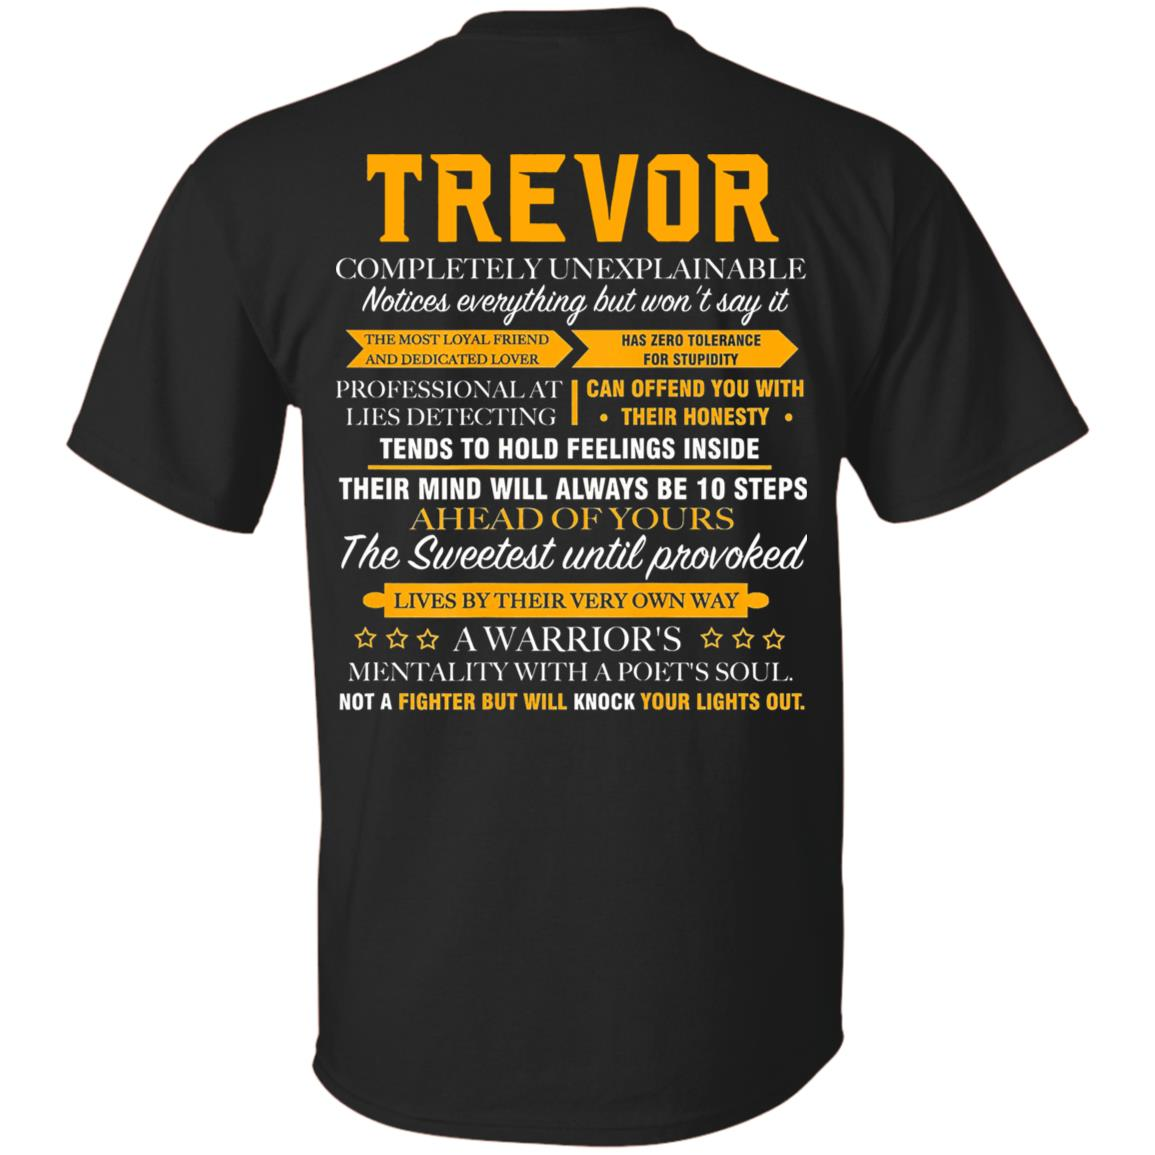 TREVOR completely unexplainable T-Shirt Printed on Back